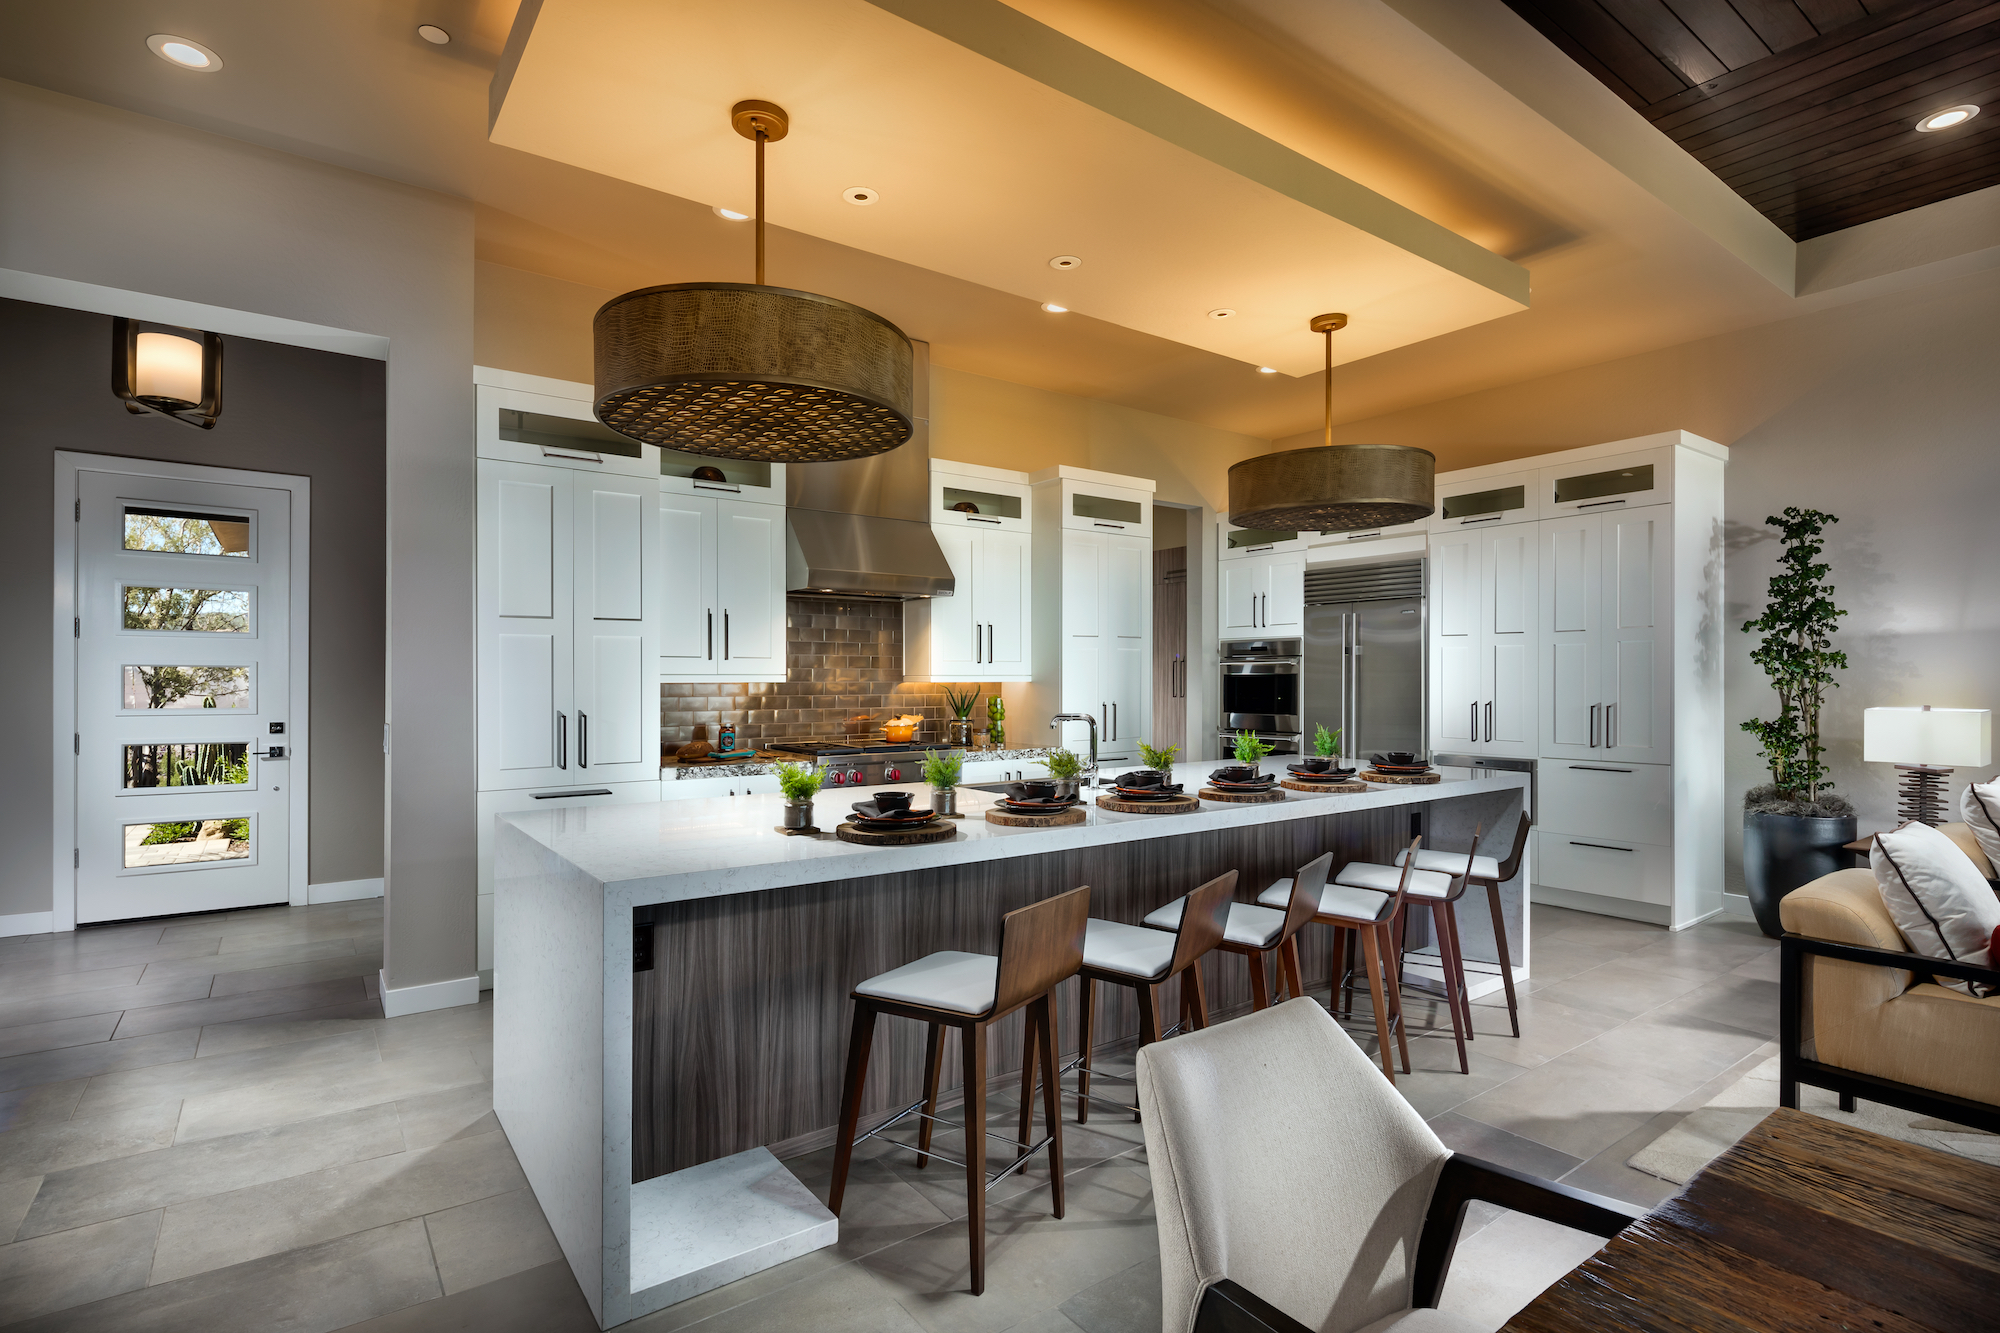 25 Luxury Kitchen Ideas for Your Dream Home | Build Beautiful on Kitchen  id=56300